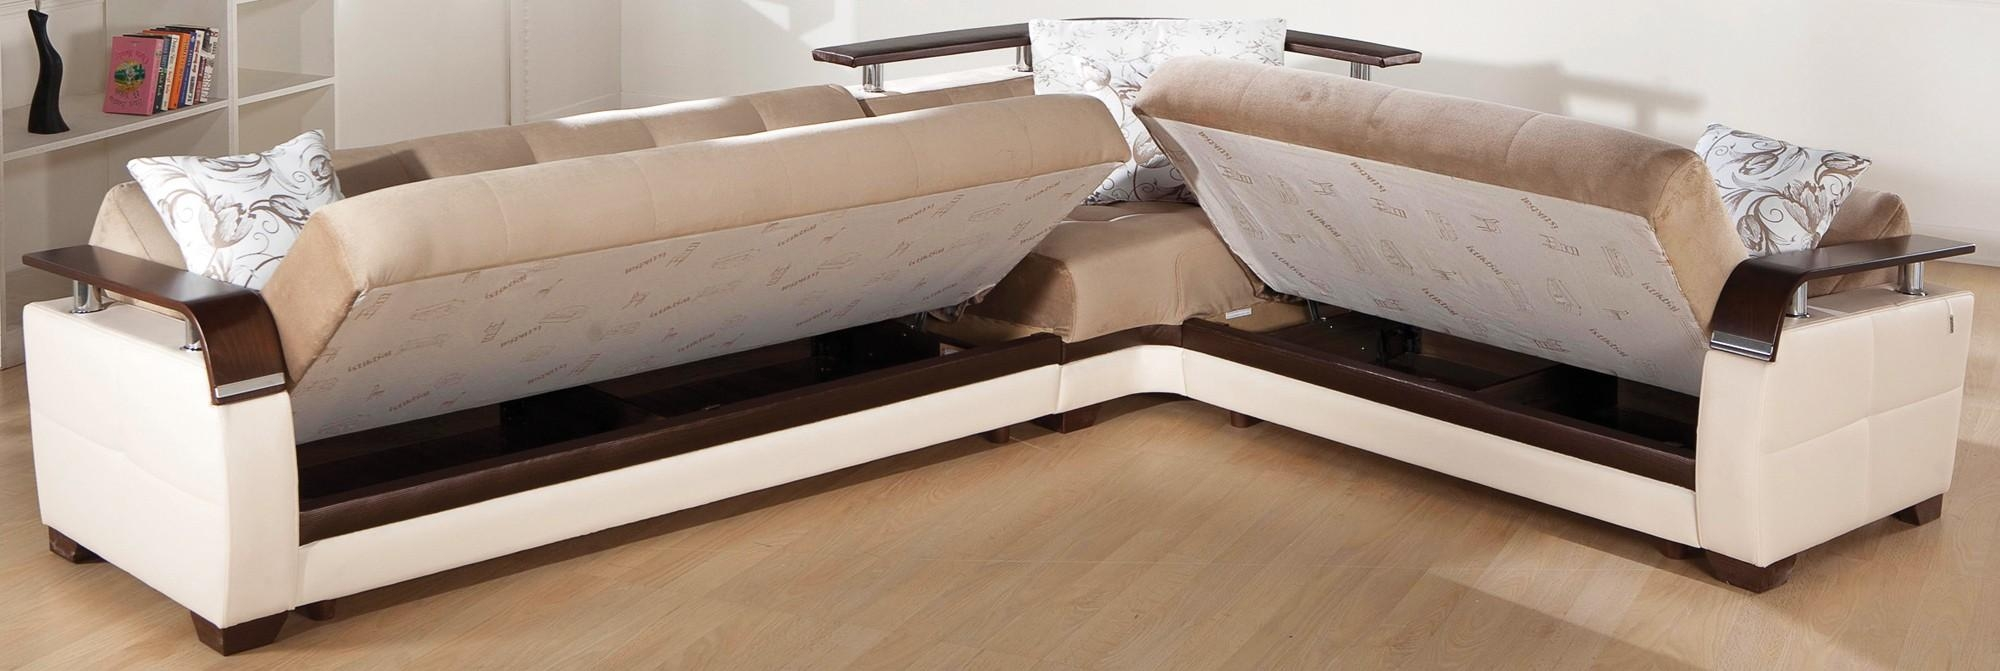 Awesome Sectional Sleeper Sofas Bed Ideas – Pull Out Sofa Bed Pertaining To Sectional Sofa Beds (View 12 of 20)